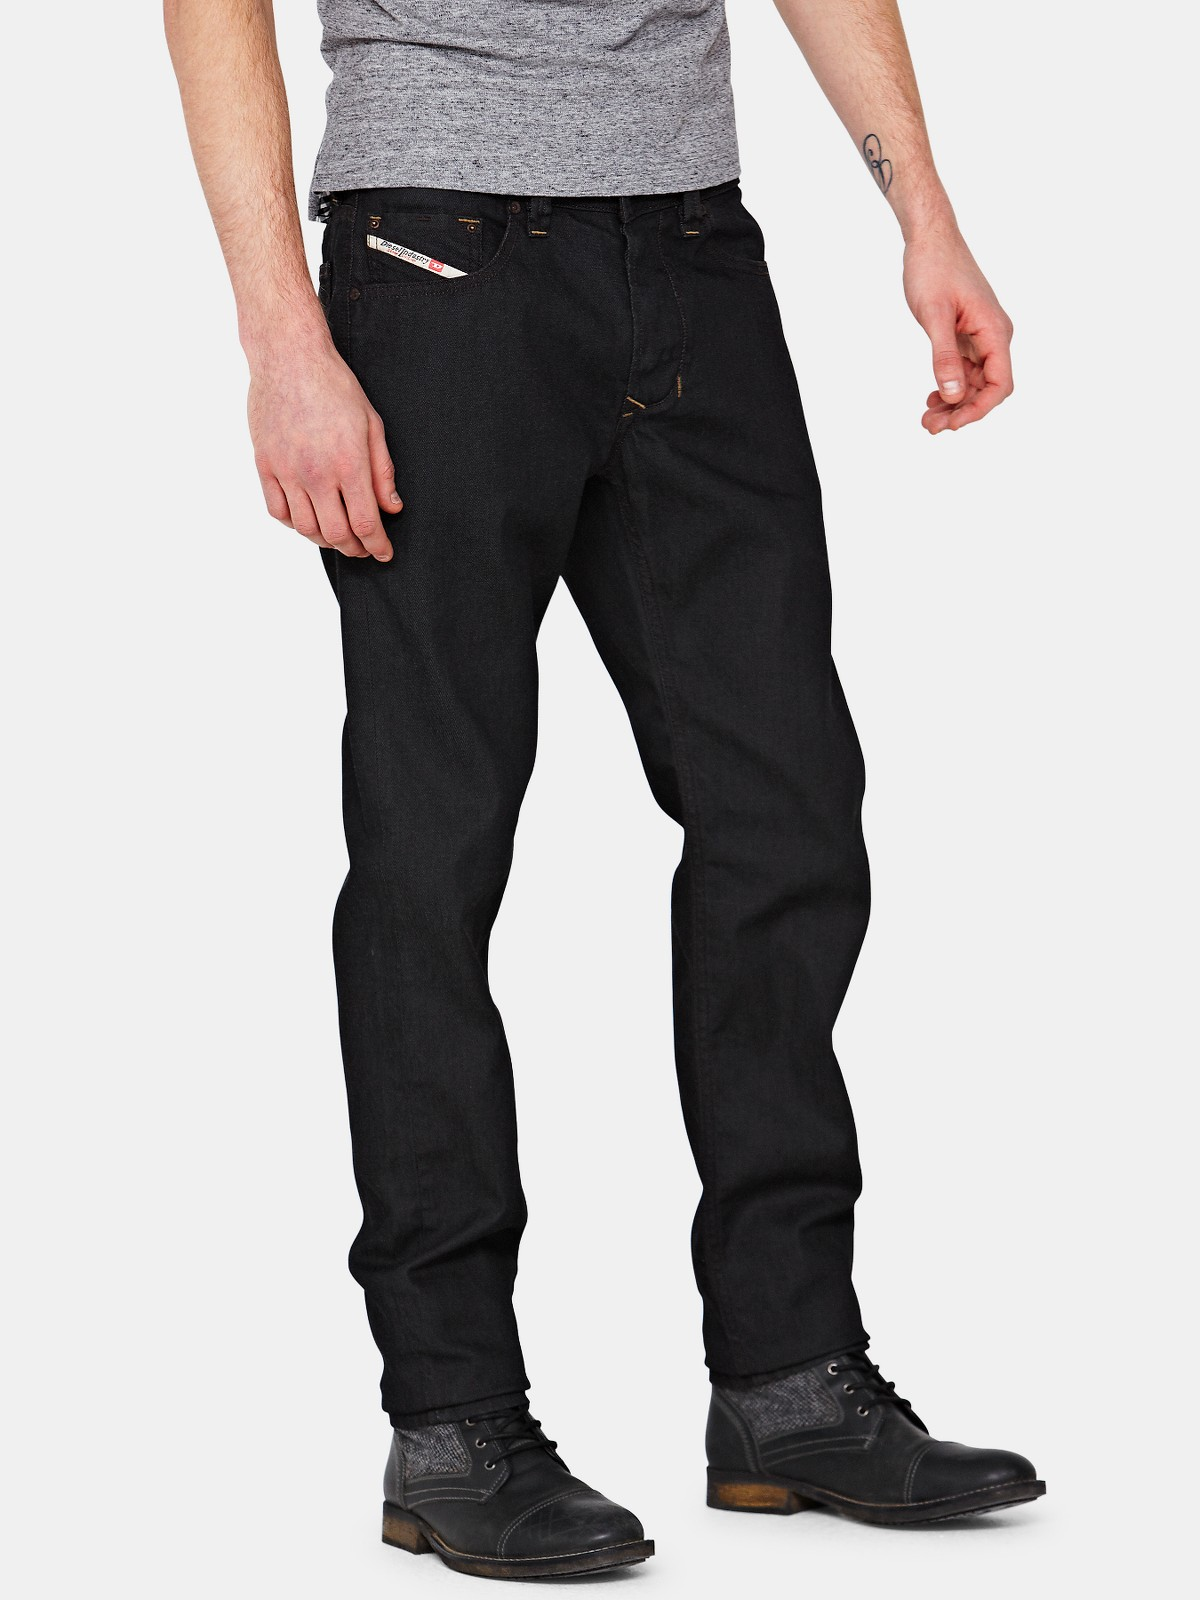 Shop for men's tapered leg jeans at kumau.ml Next day delivery and free returns available. s of products online. Buy men's tapered leg jeans now! Diesel® Black Z Belther Tapered Fit Jean. £ Diesel® Light Wash 84UX Buster Tapered Fit Jean. £ Diesel Dark Wash 69BM Larkee Beex Regular Tapered Fit Jean.